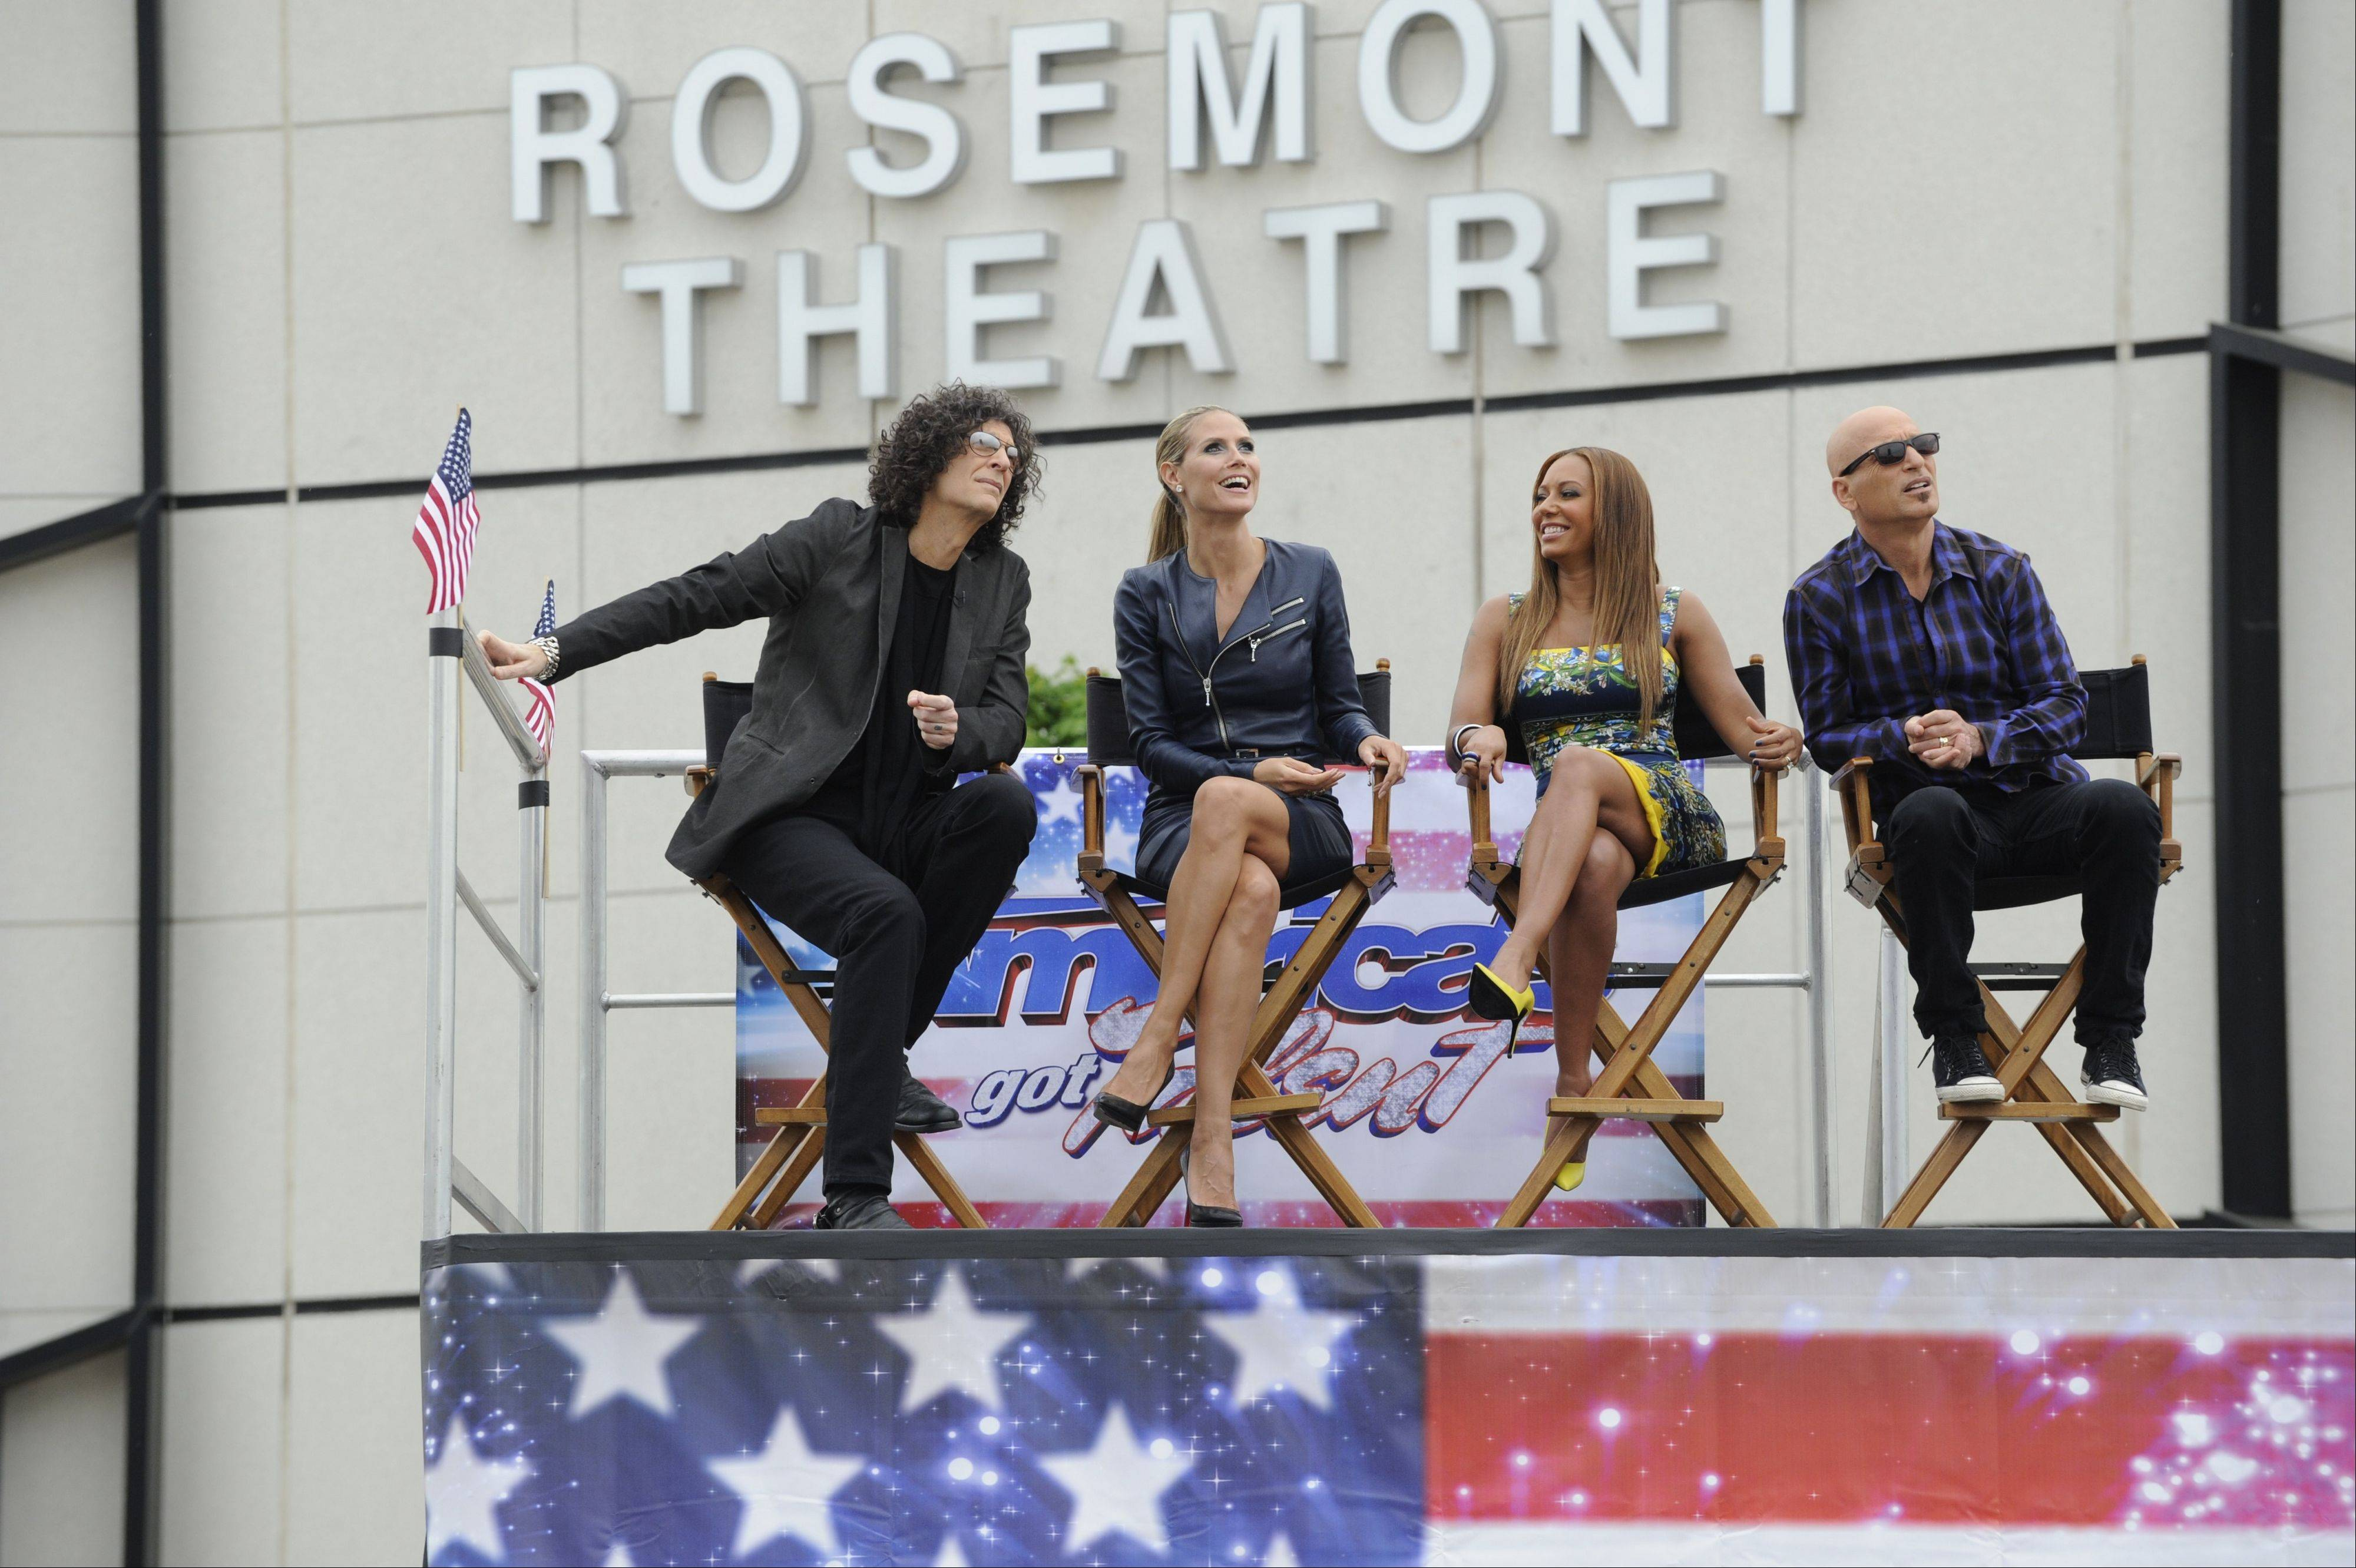 """America's Got Talent"" judges -- Howard Stern, left, Heidi Klum, Mel B and Howie Mandel -- taped for three days at the Rosemont Theatre in May. The episode featuring their time here airs at 8 p.m. Tuesday on NBC."